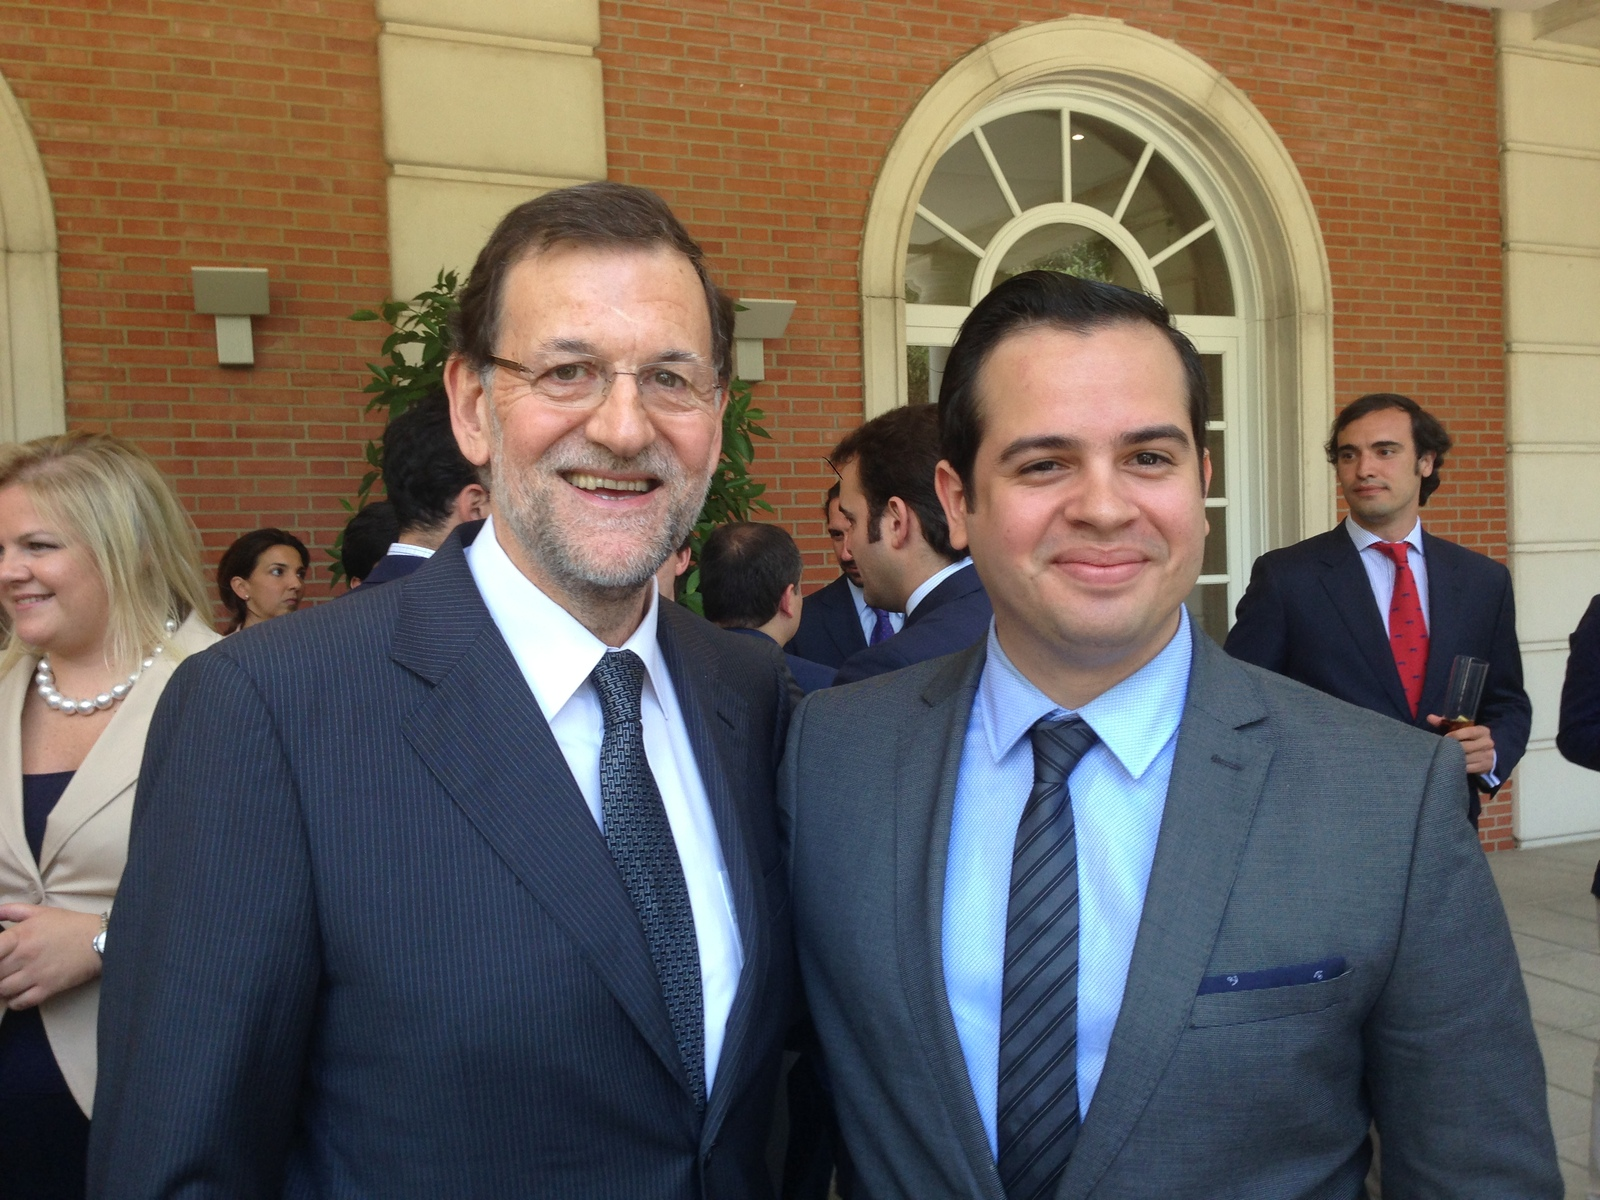 Mariano Rajoy, Prime Minister of Spain (2013) and Rui Delgado.-